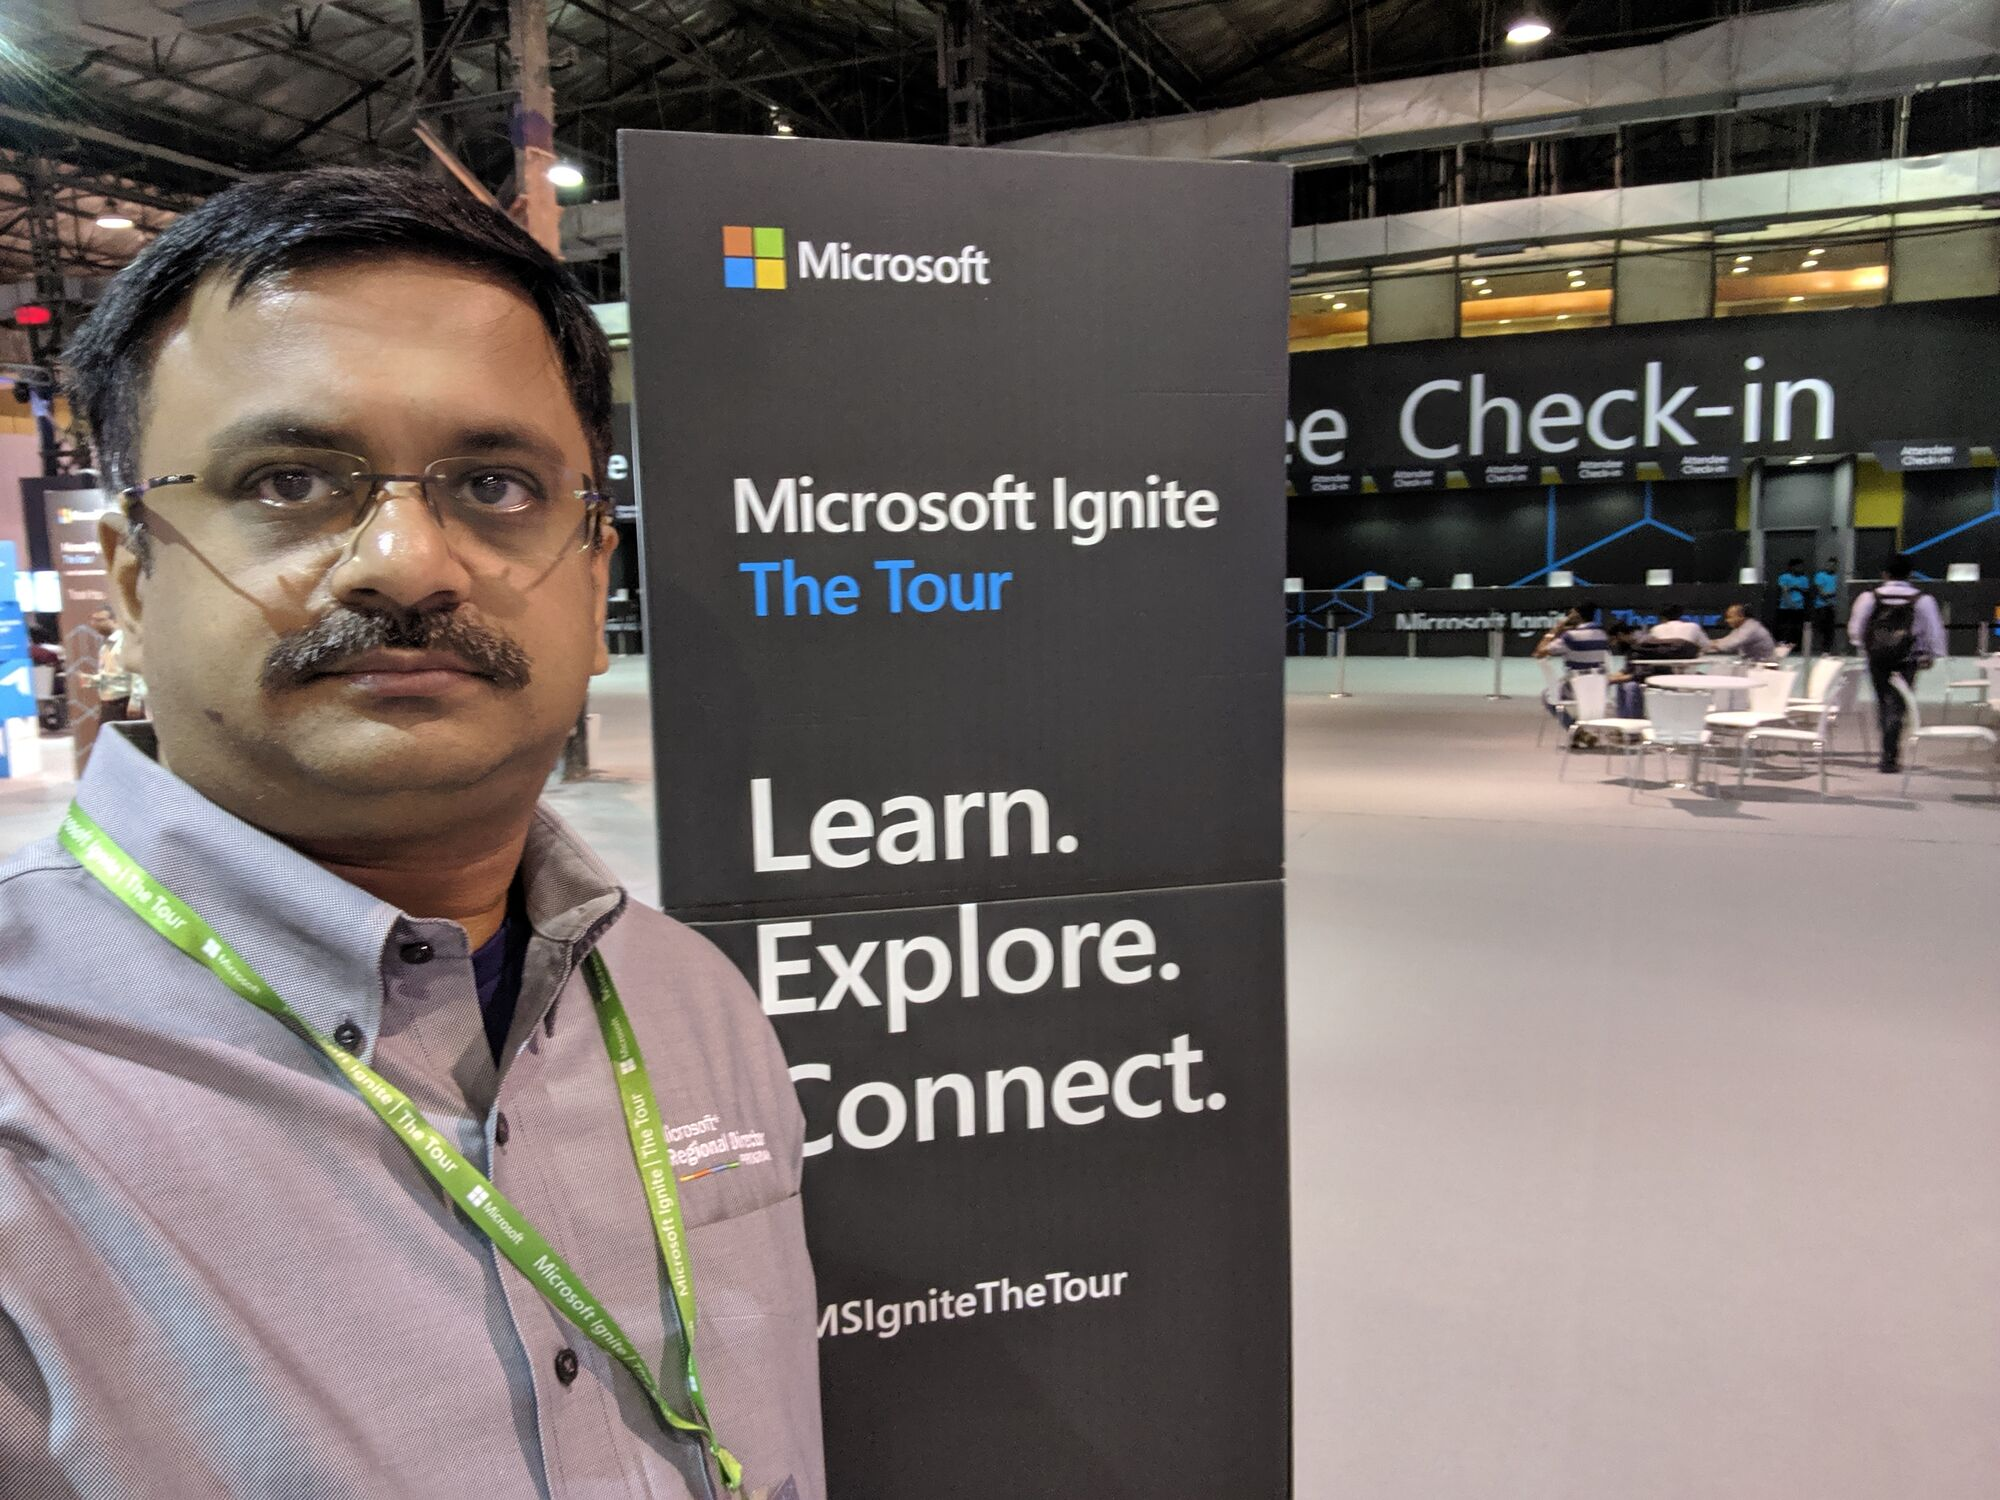 Learn, Explore and Connect that was the theme of the Microsoft Ignite Tour